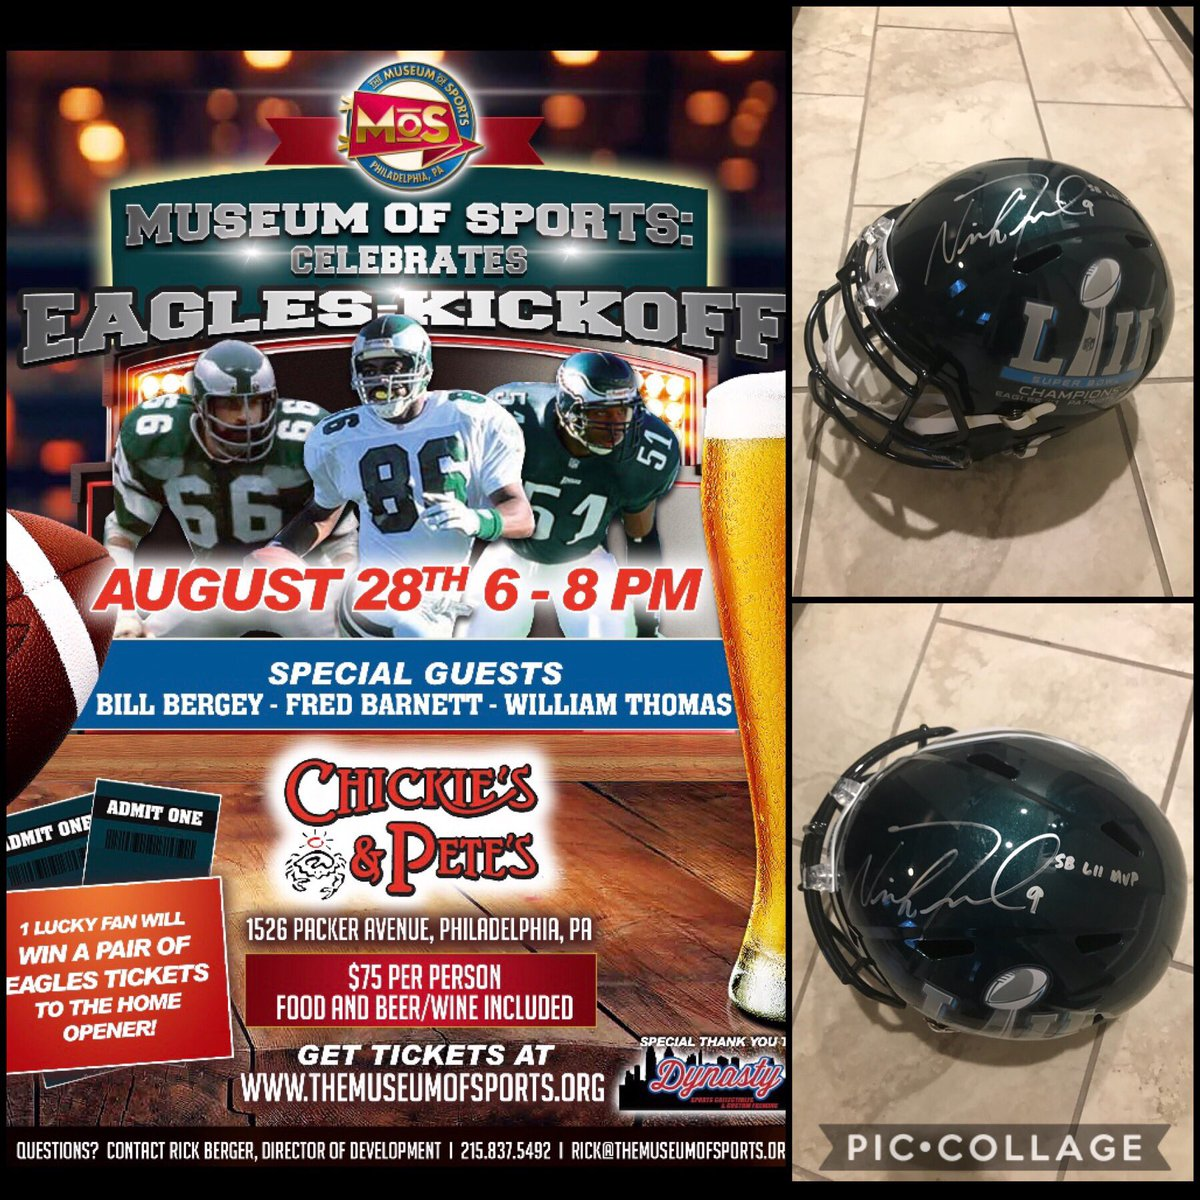 Special thanks to my friend @adambbolden and of course our World Champion QB  @NickFoles for donating this helmet for our upcoming @mosphilly event at @ChickiesnPetes on August 28th more info and Tix available at https://the-museum-of-sports.ticketleap.com/eagles-kickoff/     #FlyEaglesFly